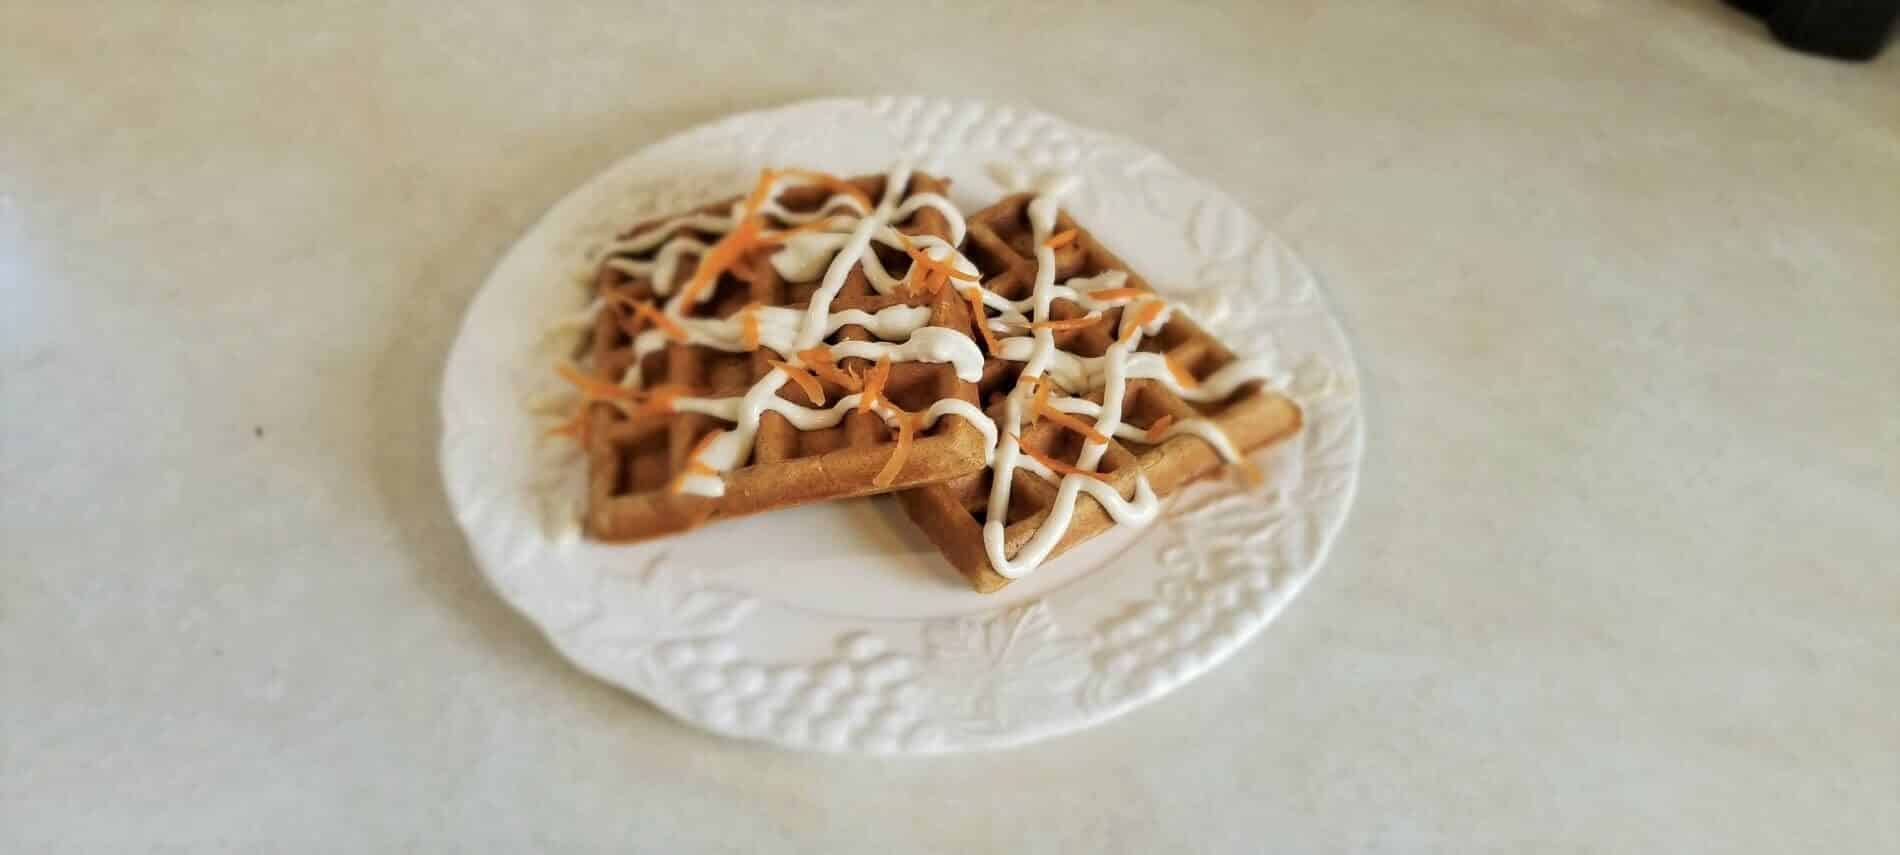 two waffles topped with cream cheese drizzle and shredded carrotson a white plate